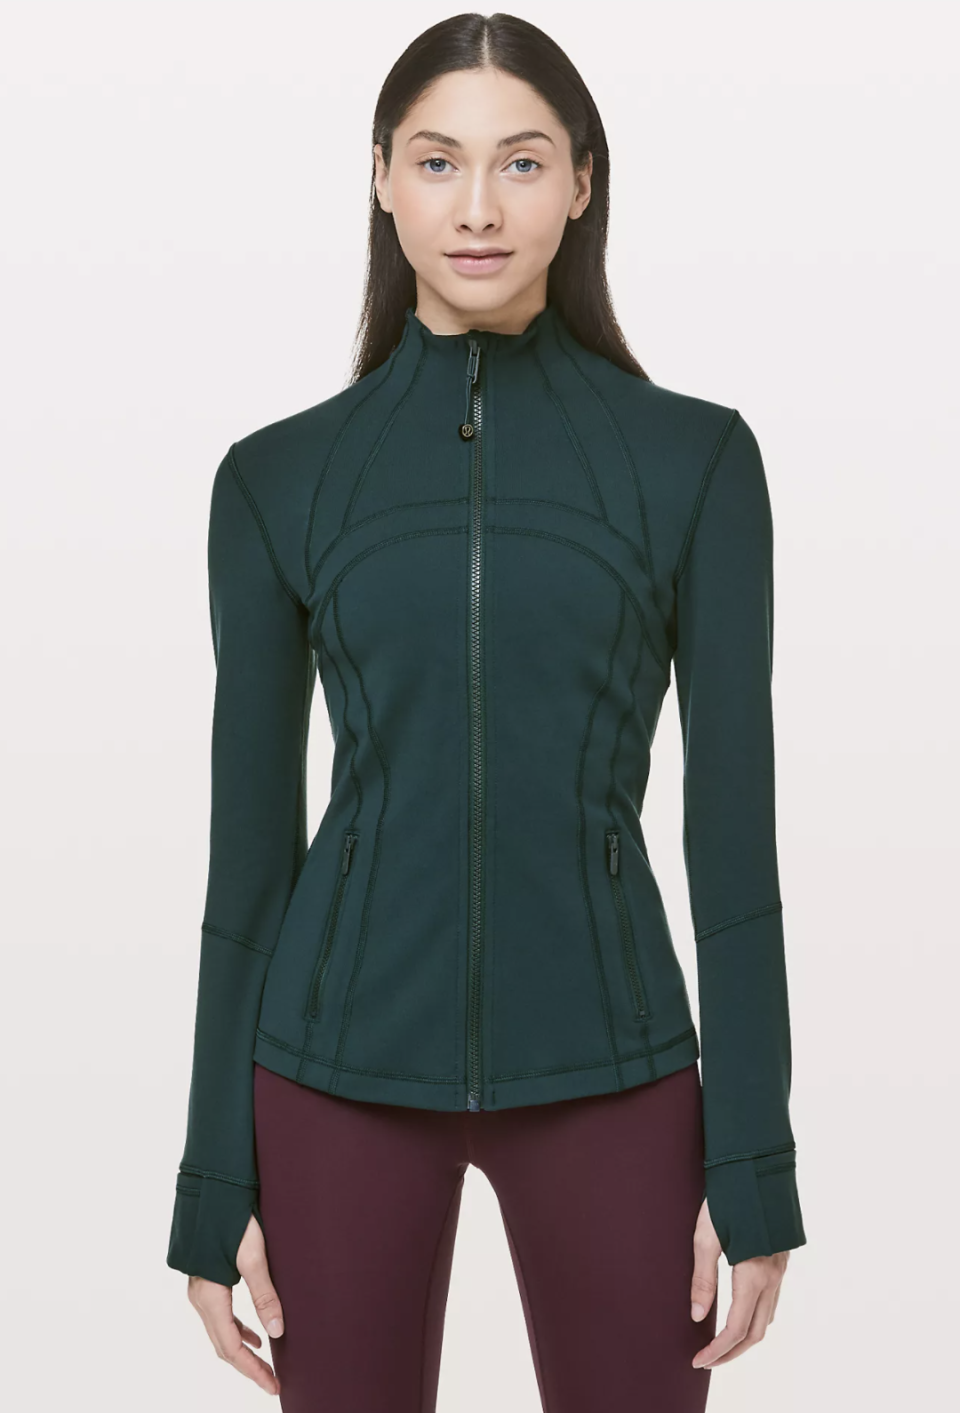 Define Jacket - Lululemon, $128.